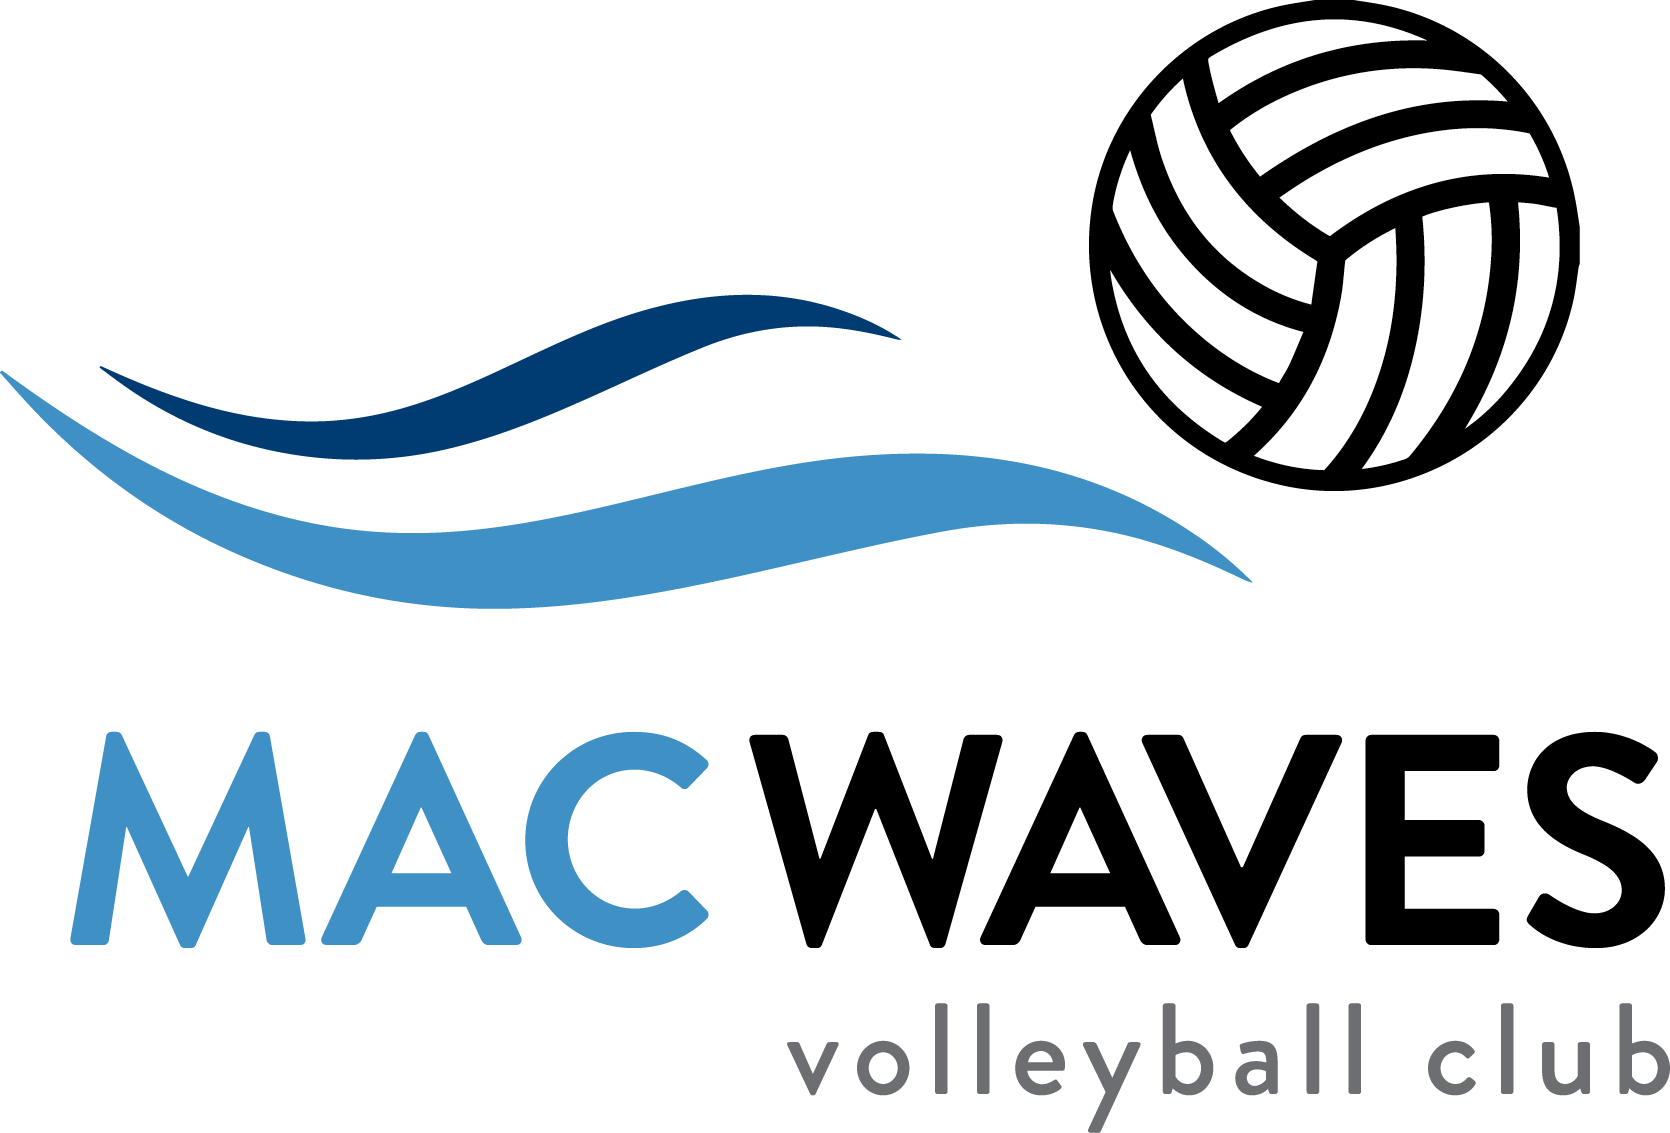 mac waves volleyball club